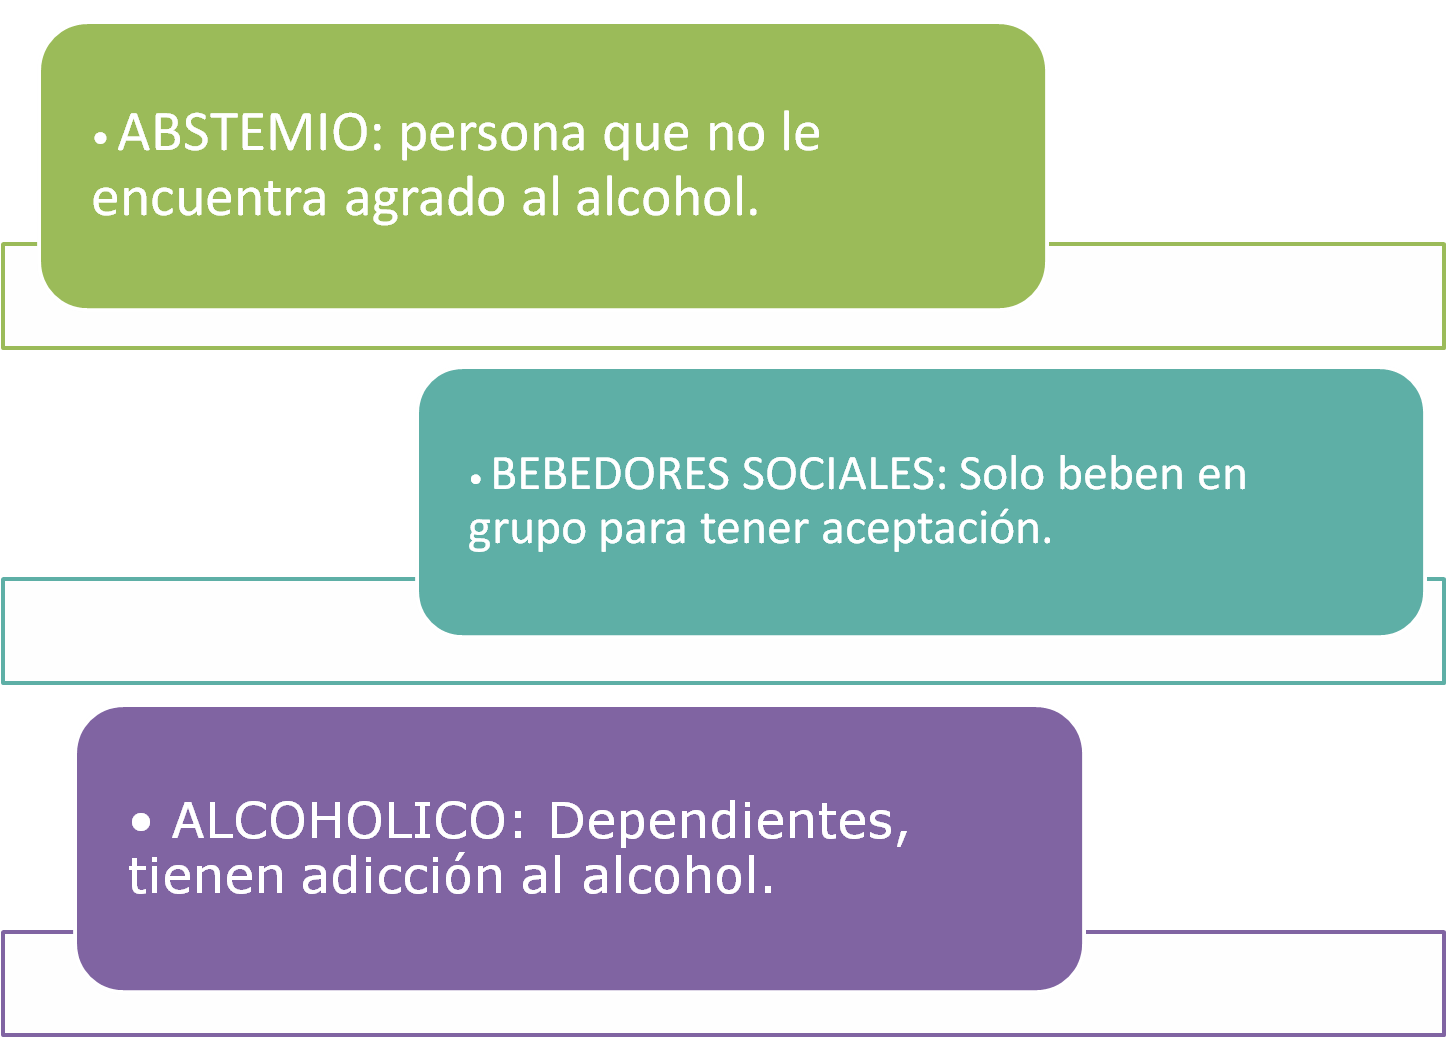 Ser codificado del alcoholismo o no